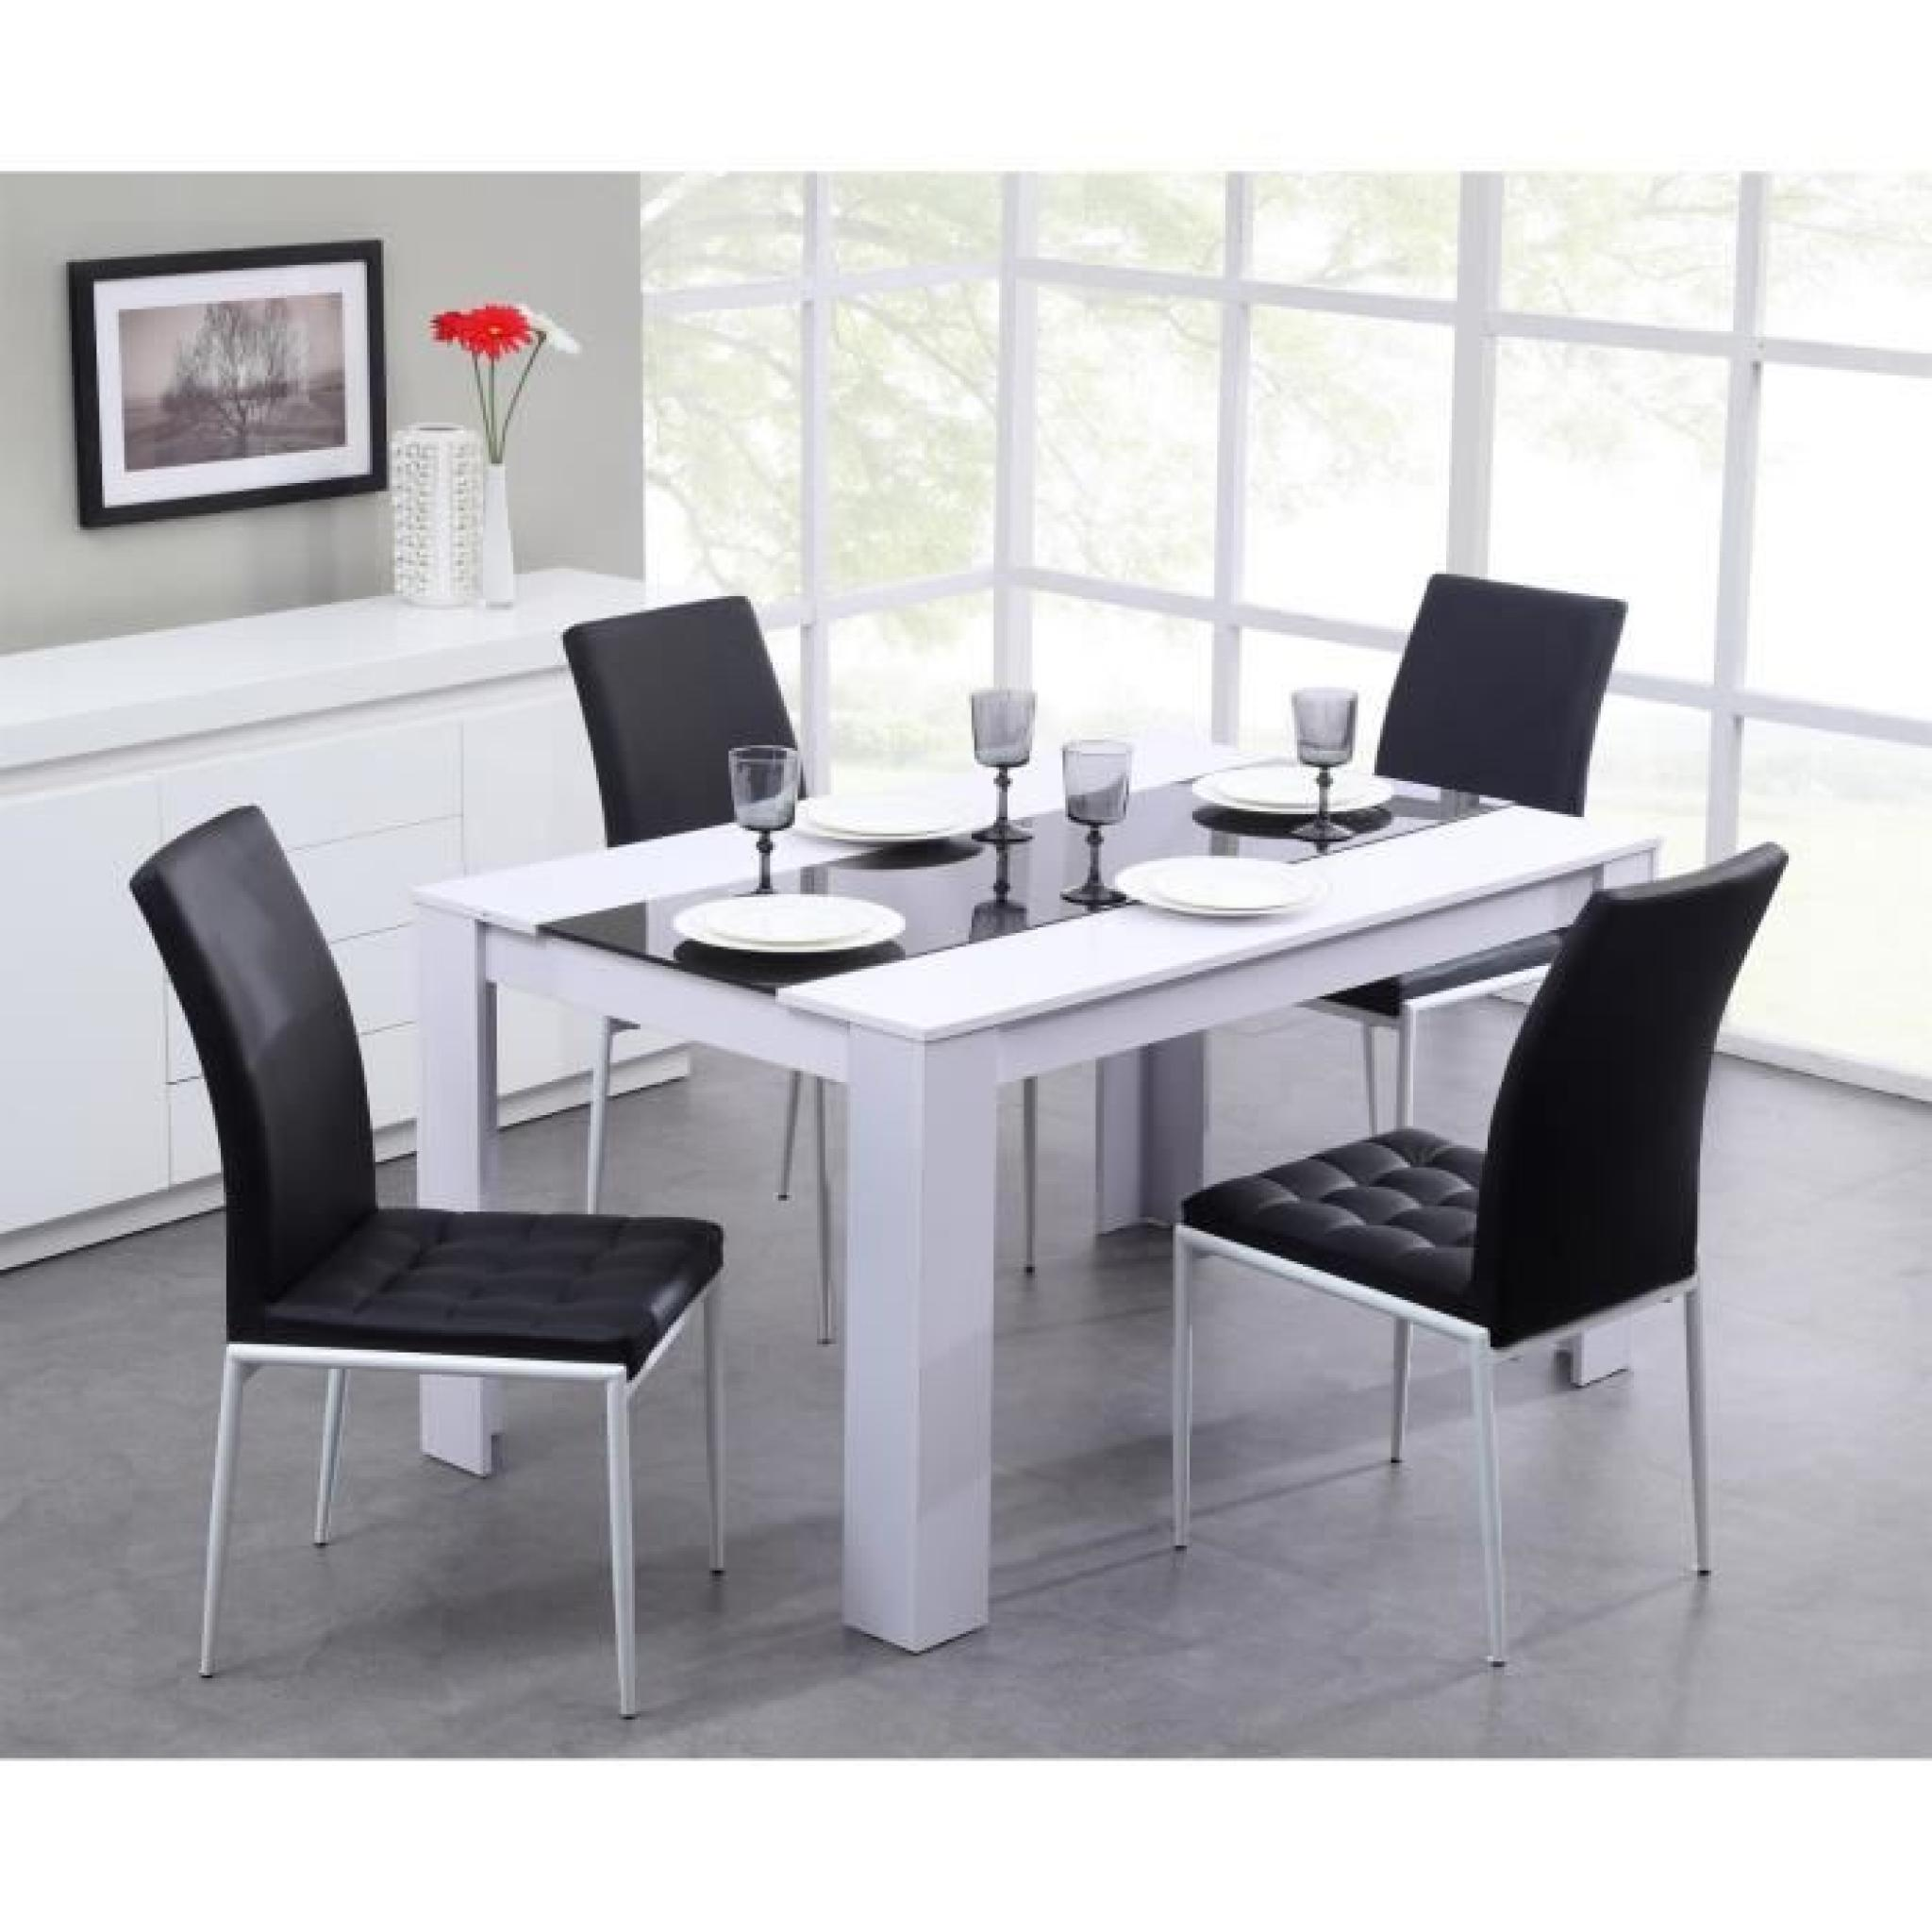 Salle a manger complete blanc laque but for Table extensible noir et blanc